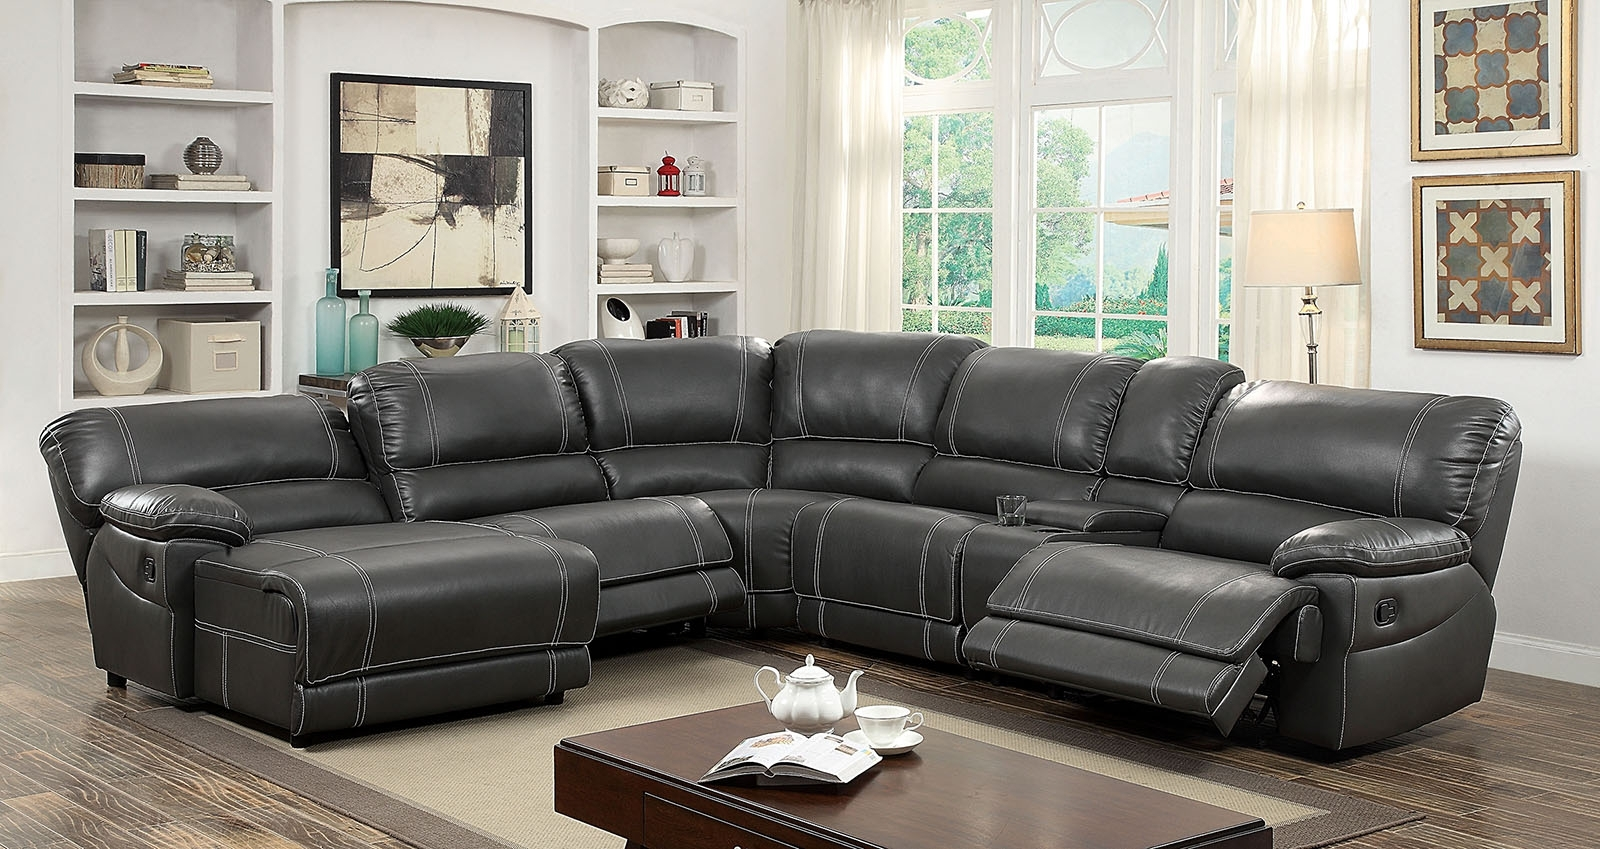 Furniture Of America 6131Gy Gray Reclining Chaise Console Sectional Pertaining To Orange County Ca Sectional Sofas (View 2 of 10)